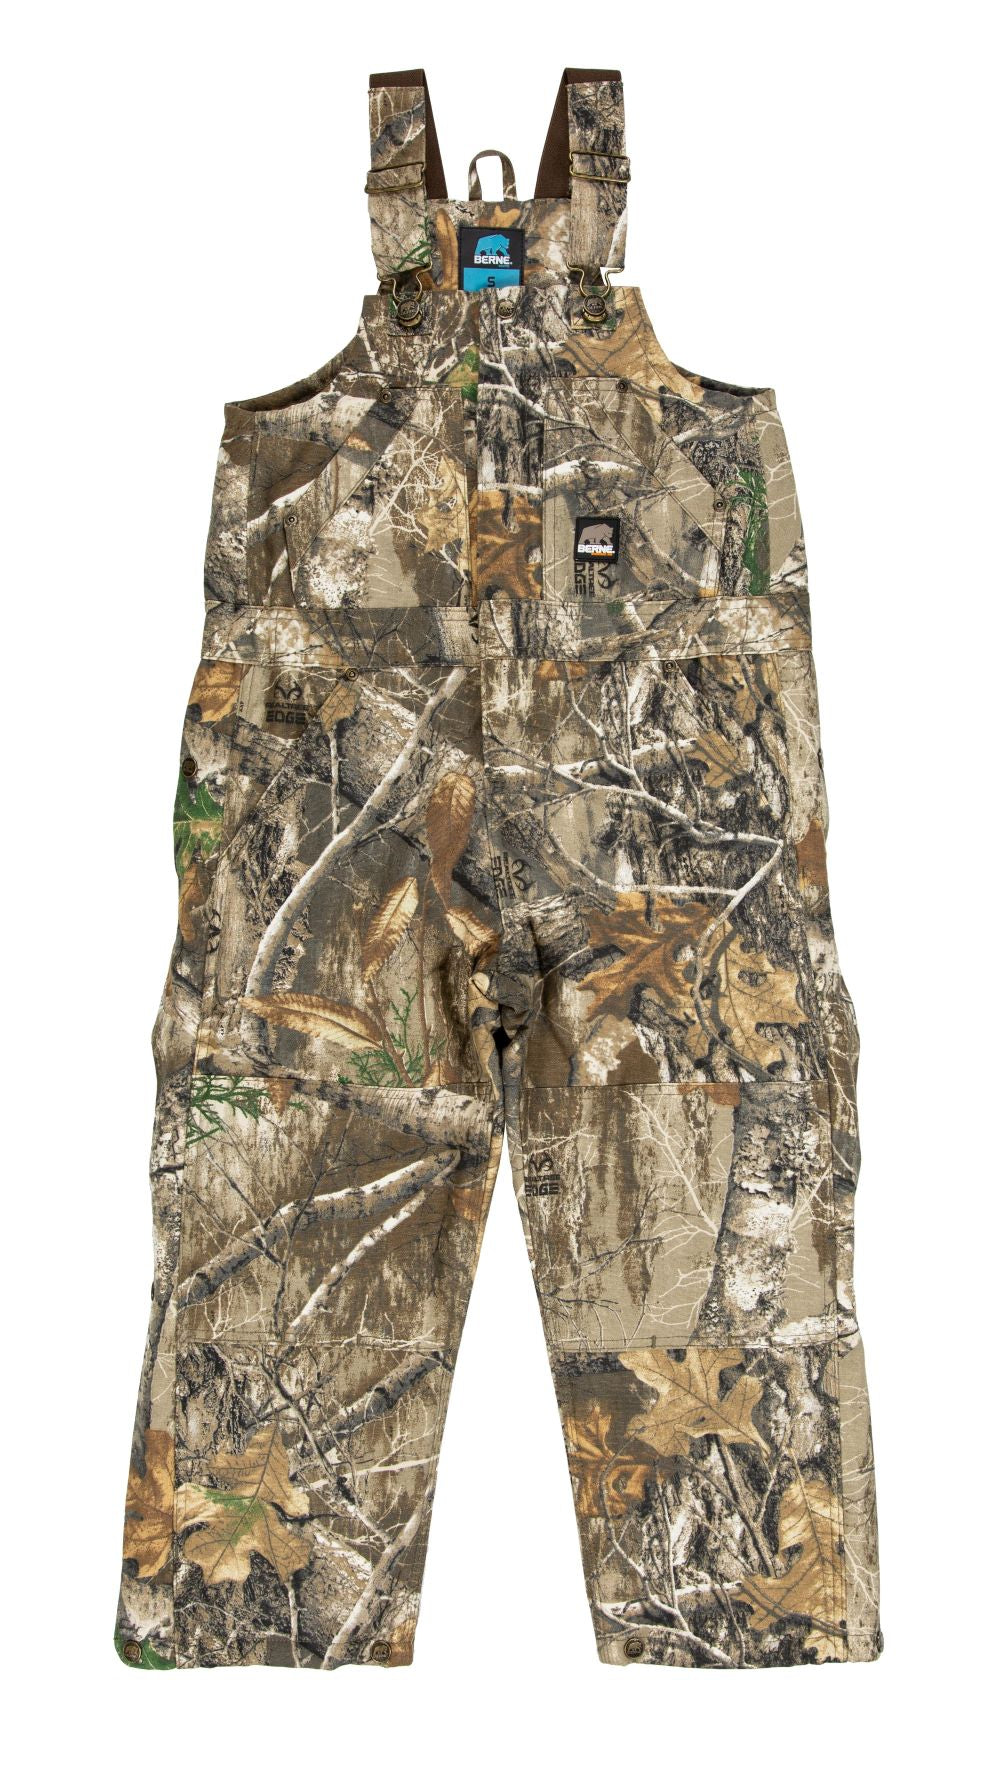 'Berne' Youth Insulated Bib Overall - Realtree Edge